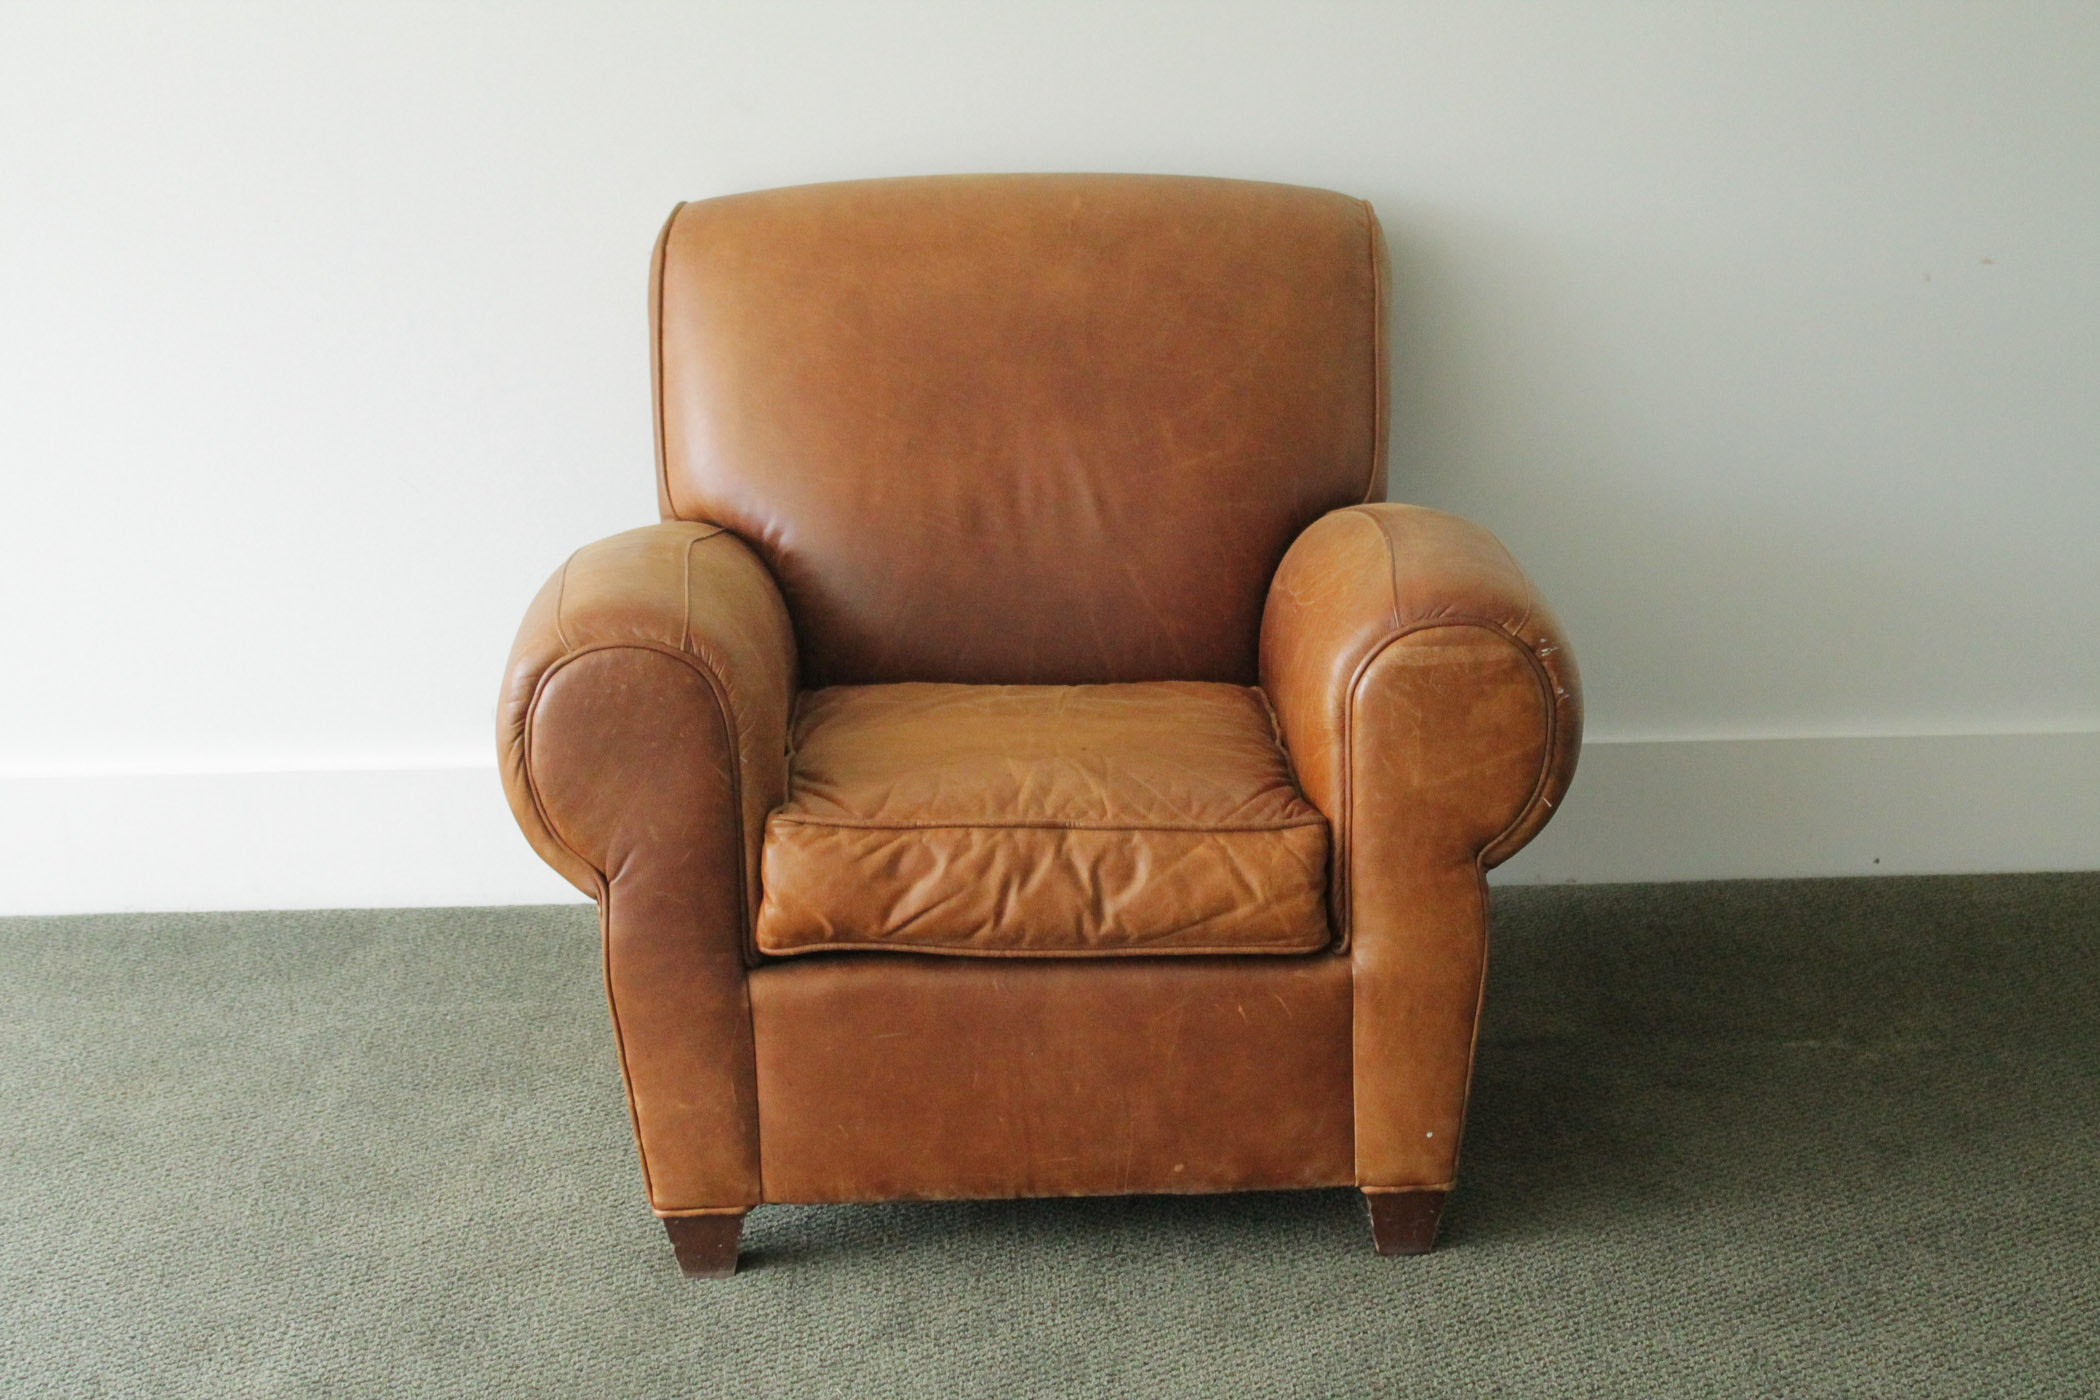 Leather Reclining Chair from Pottery Barn ... & Leather Reclining Chair from Pottery Barn : EBTH islam-shia.org